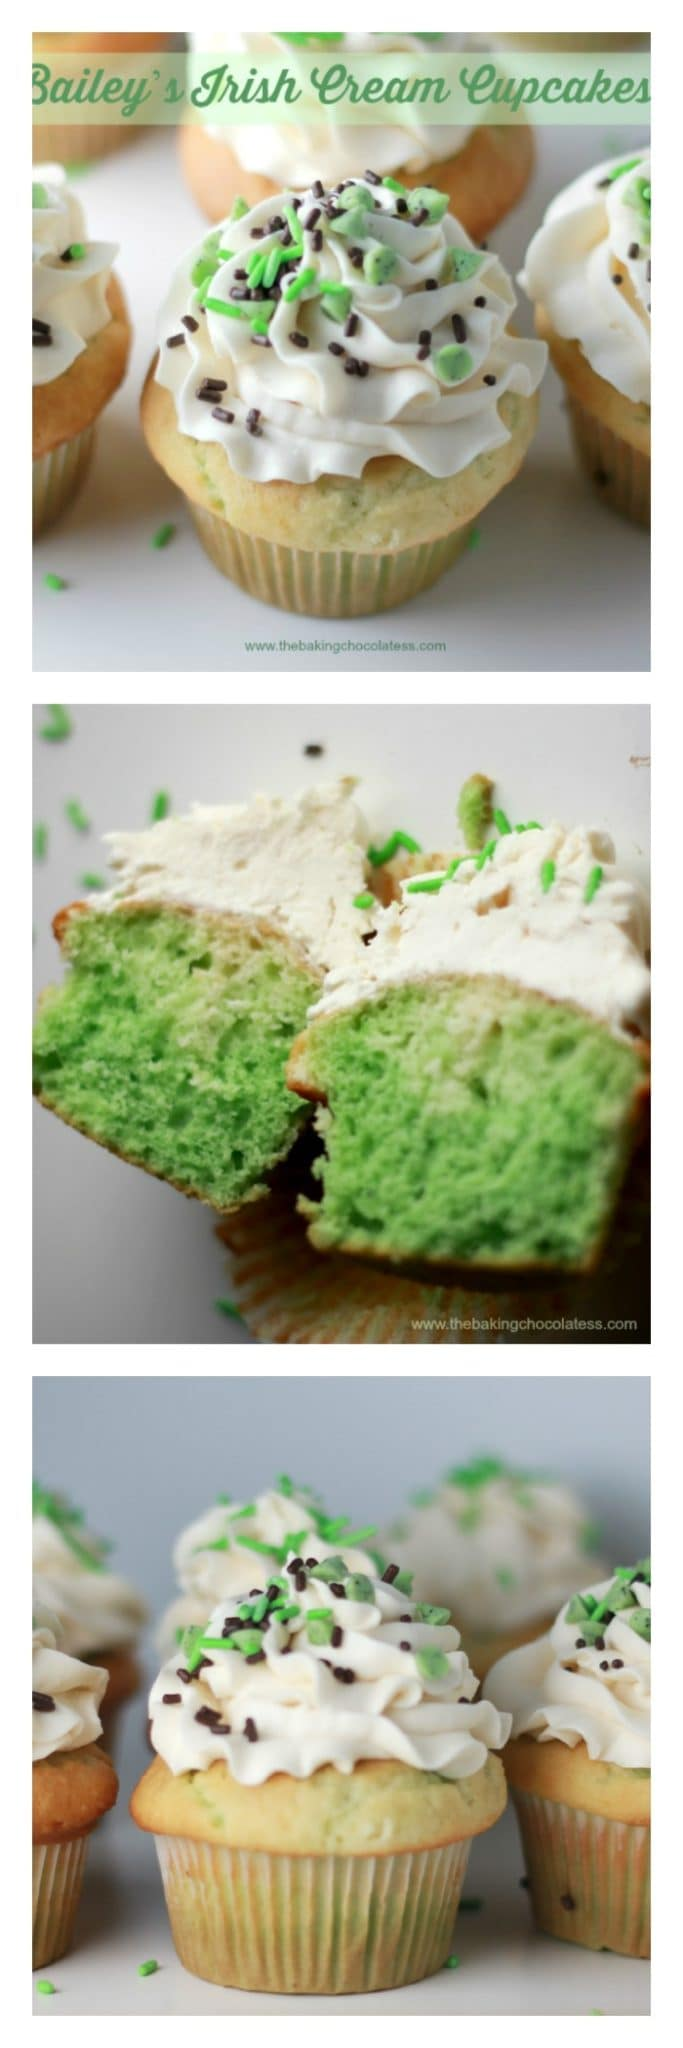 Bailey's Irish Cream Cupcakes! - Get lucky with these Bailey's Irish Cream infused cupcakes iced with a creamy delicious Bailey's Irish Cream Buttercream Frosting. YUM!! #baileys #irishcream #cupcakes #frosting #stpatricks #stuffed